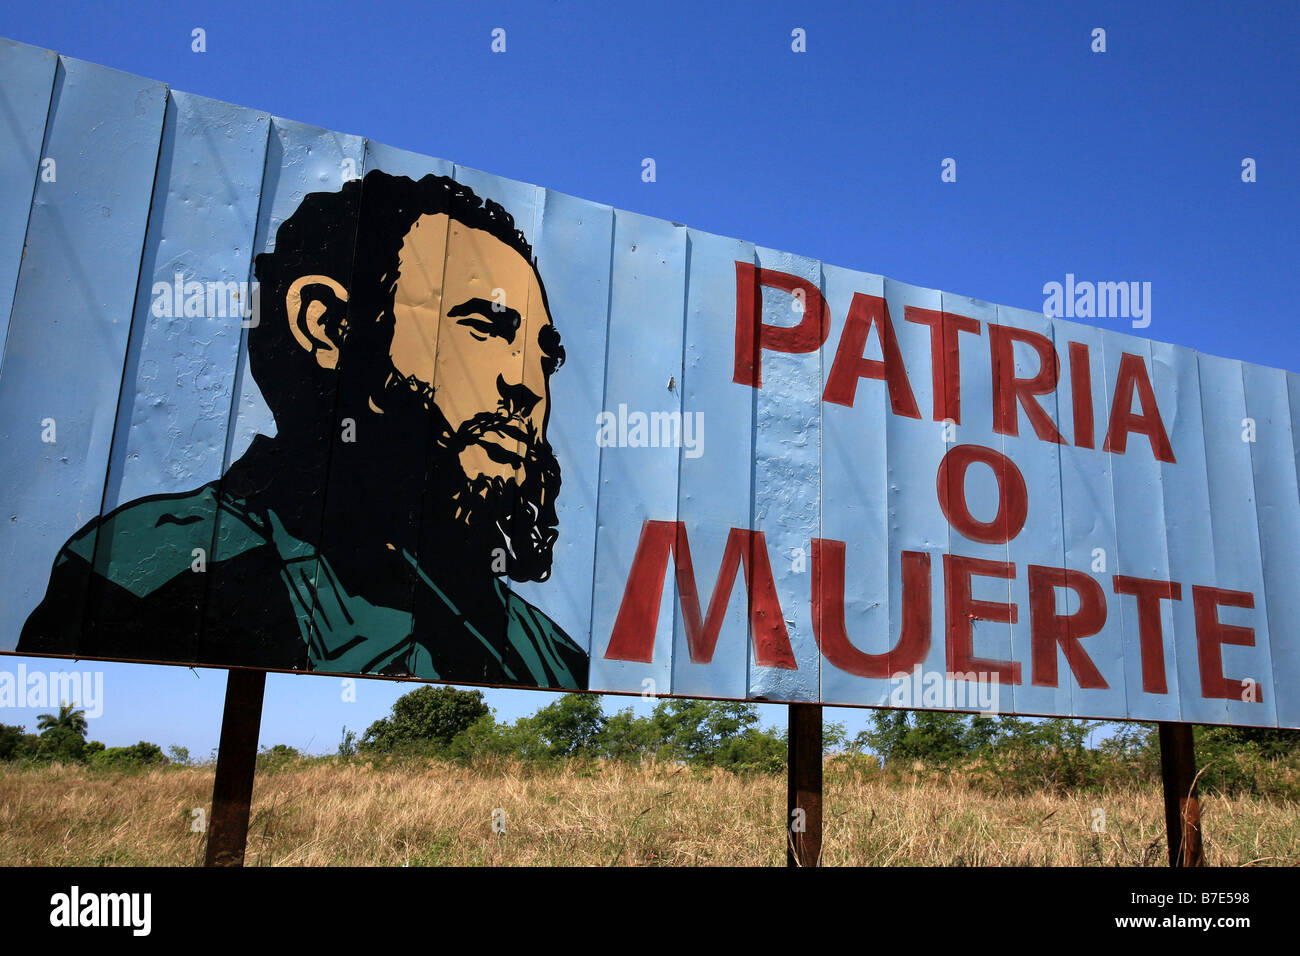 Politic poster, Cuba island, West Indies, Central America - Stock Image